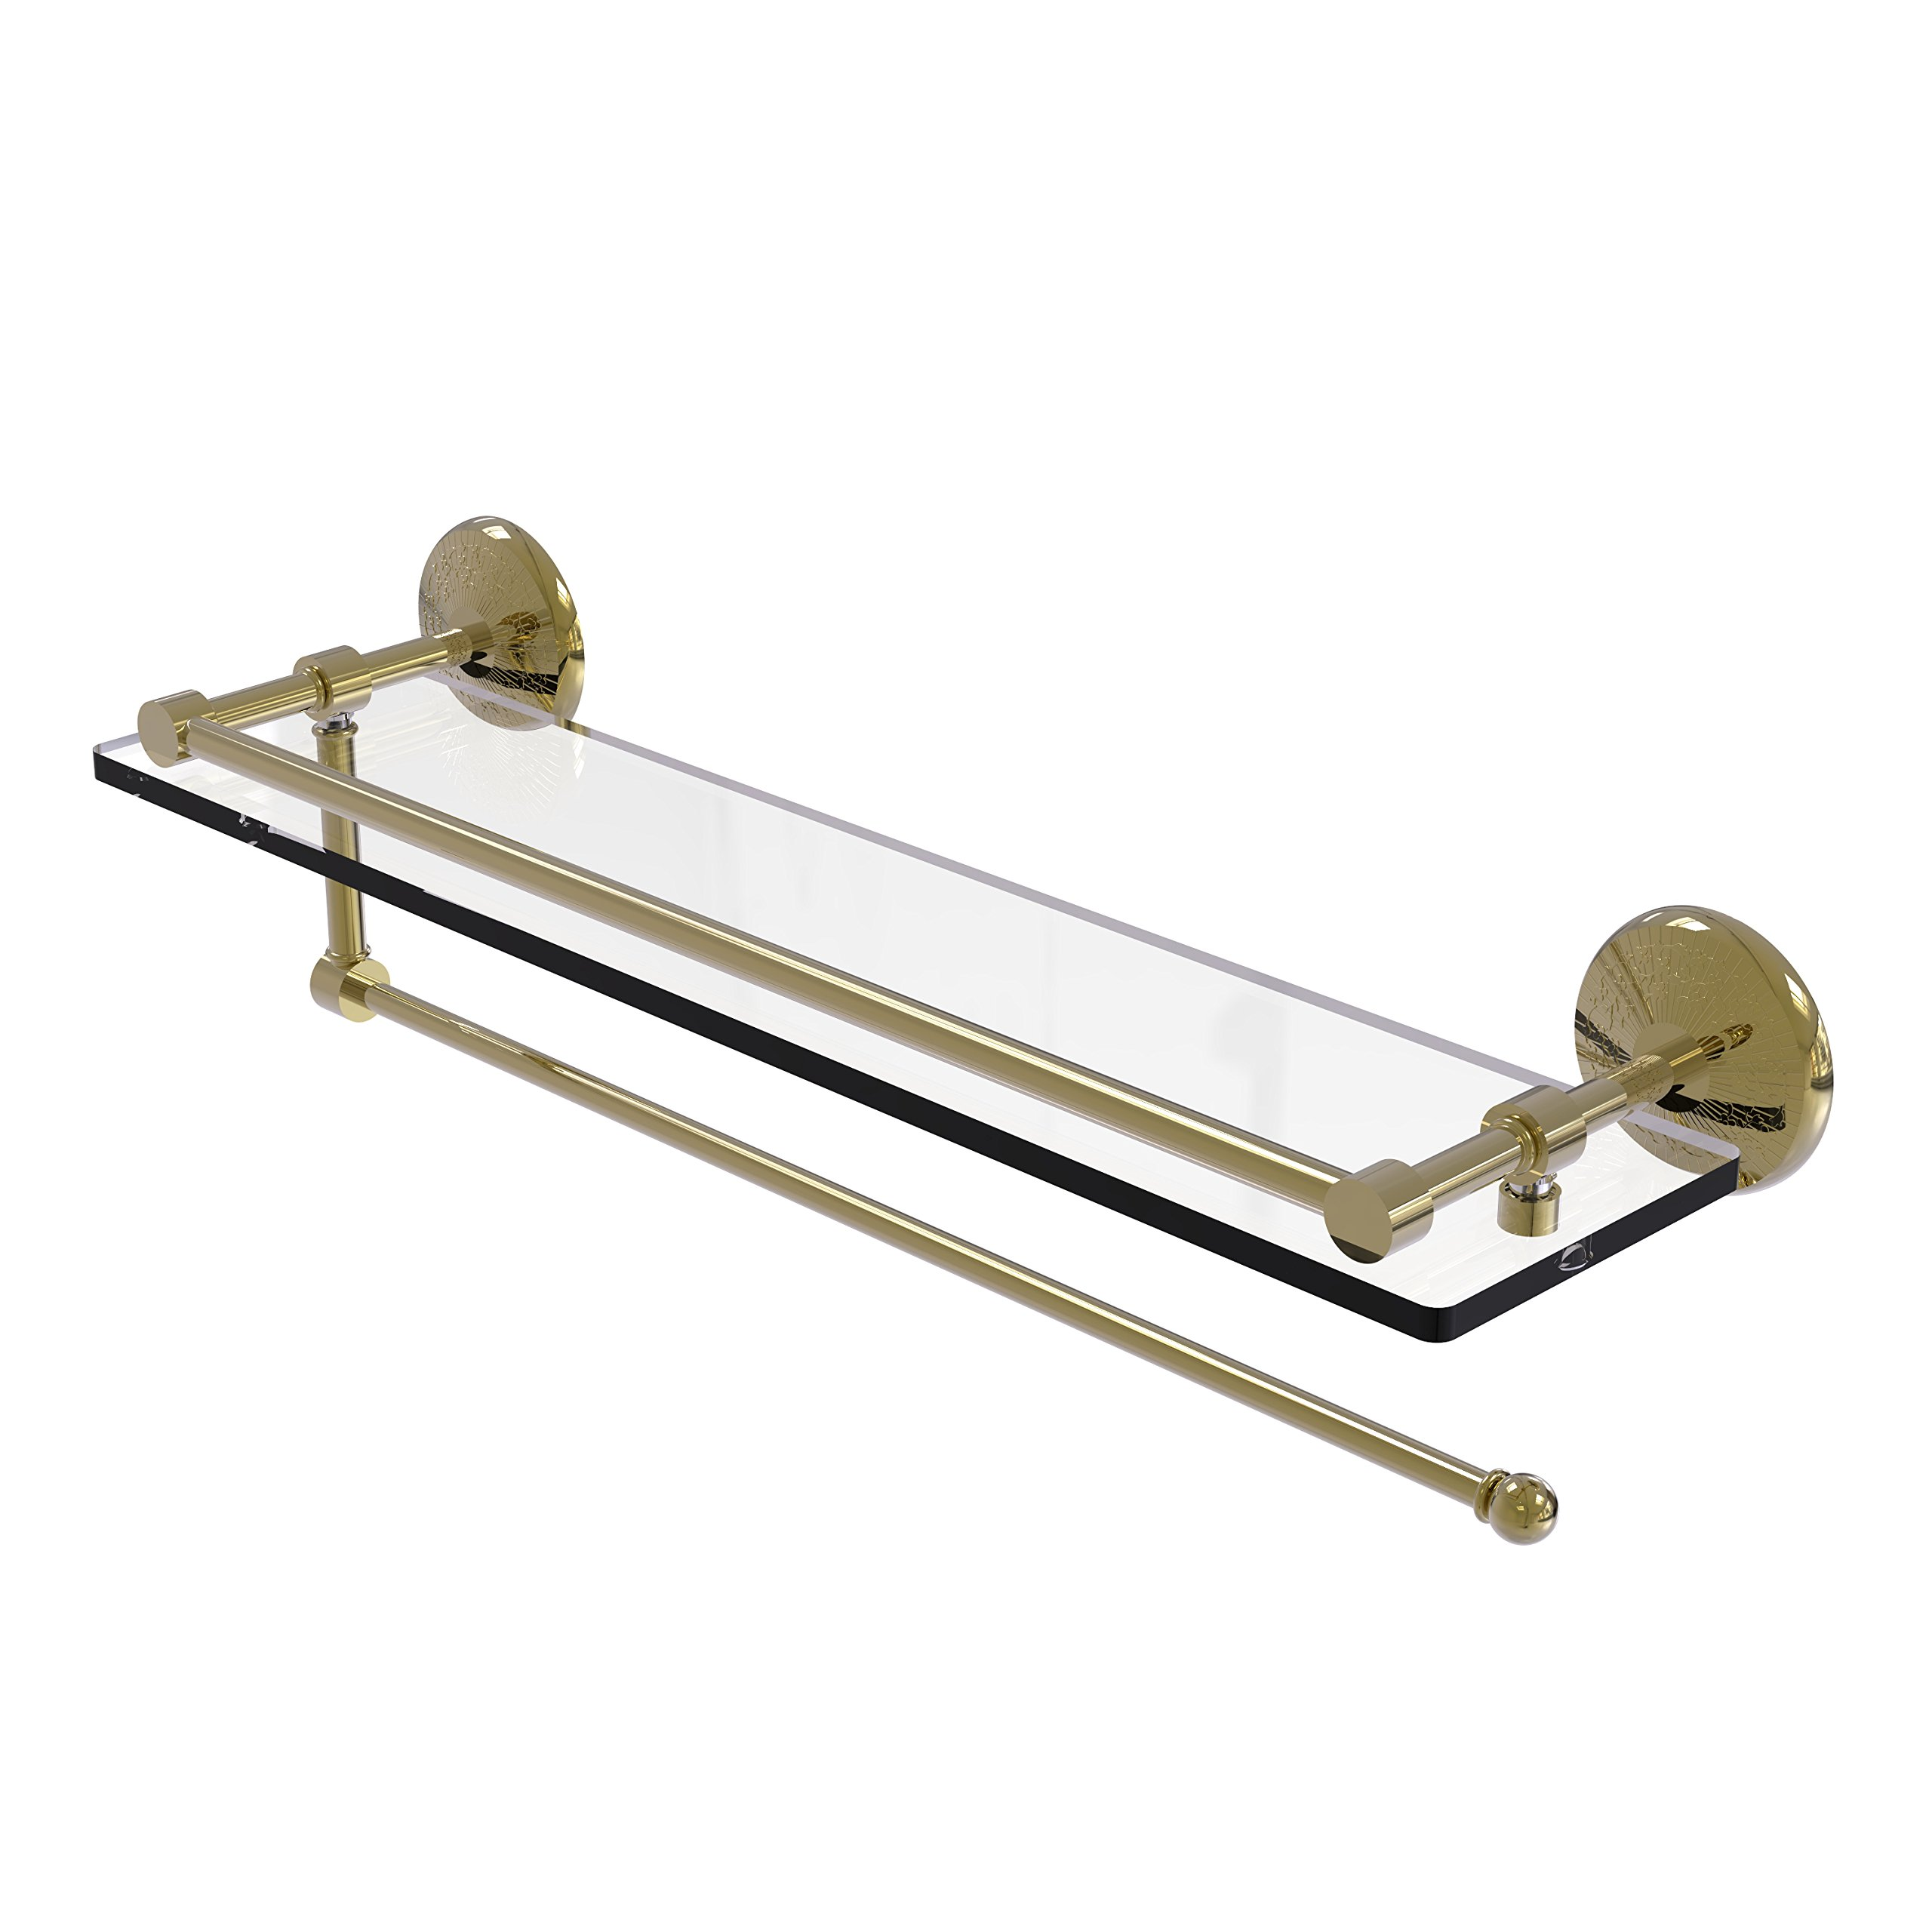 Allied Brass Prestige Monte Carlo Collection Paper Towel Holder with 22 Inch Gallery Glass Shelf PMC-1PT/22-GAL - Unlacquered Brass